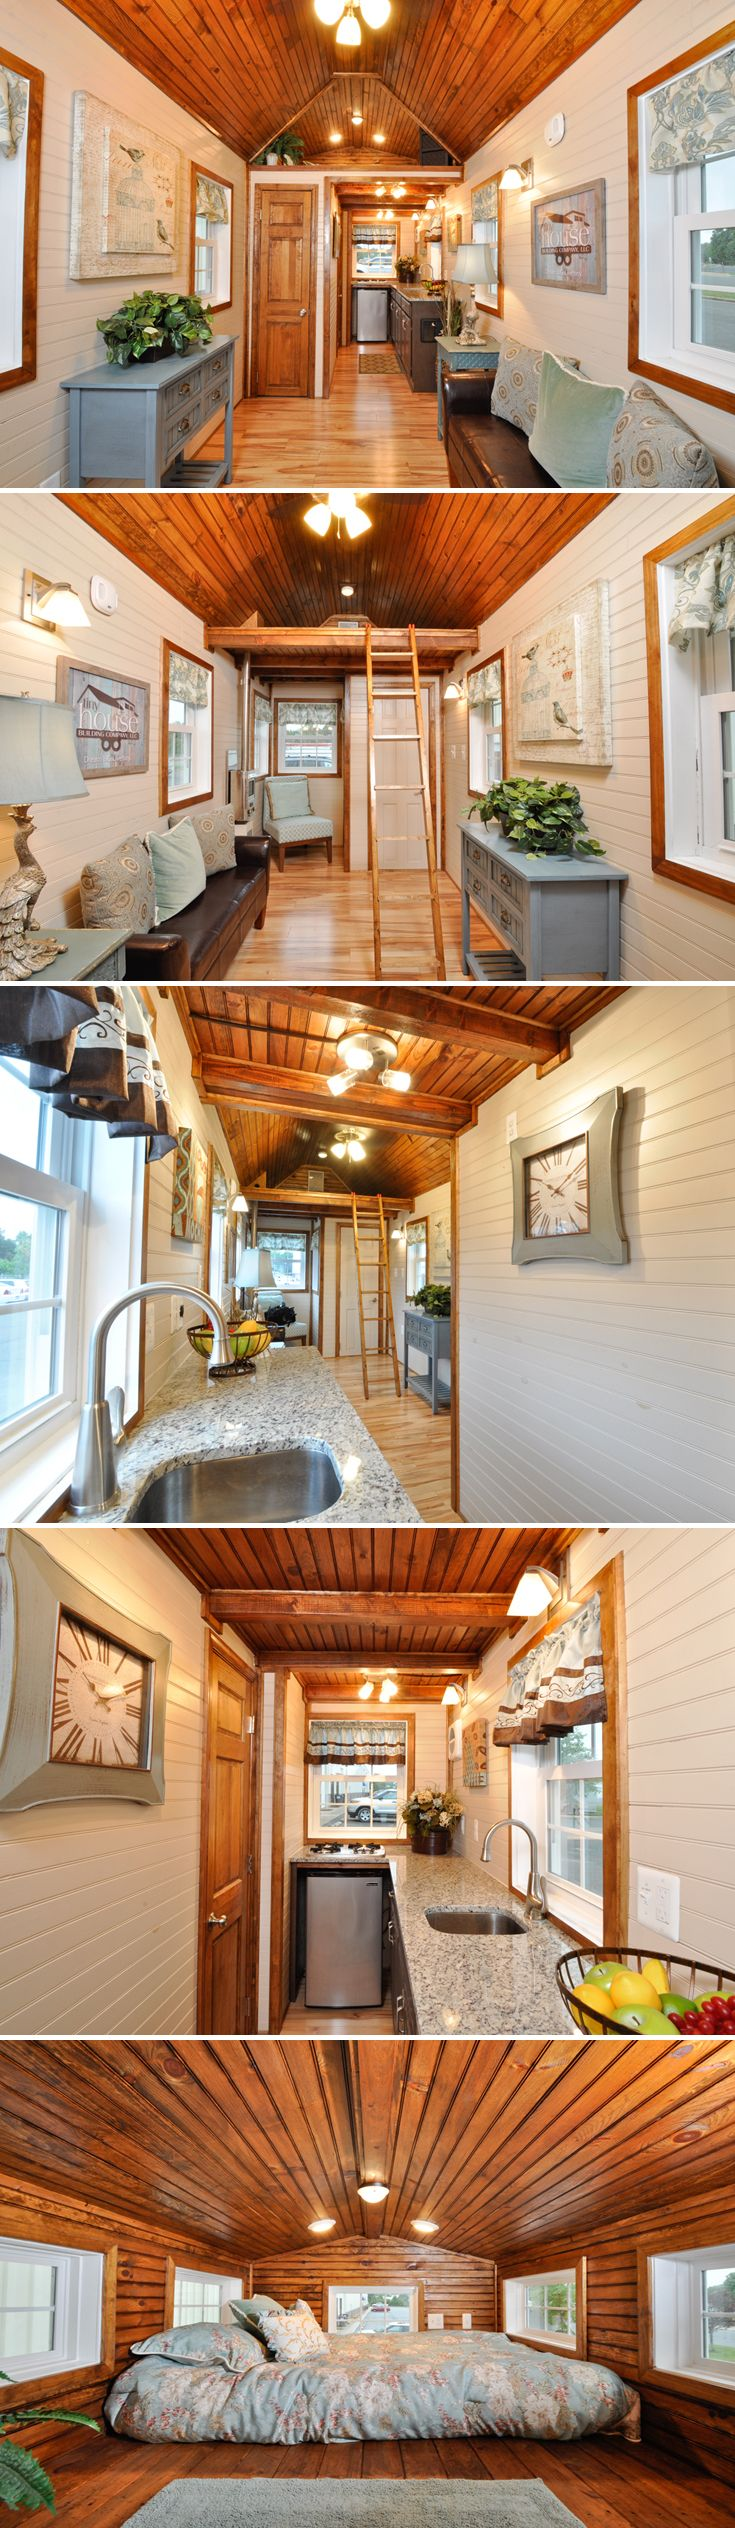 From Tiny House Building Company is the 272 sq.ft. Pioneer, built for off-grid living. The upgraded interior features a king size loft and hickory cabinets.